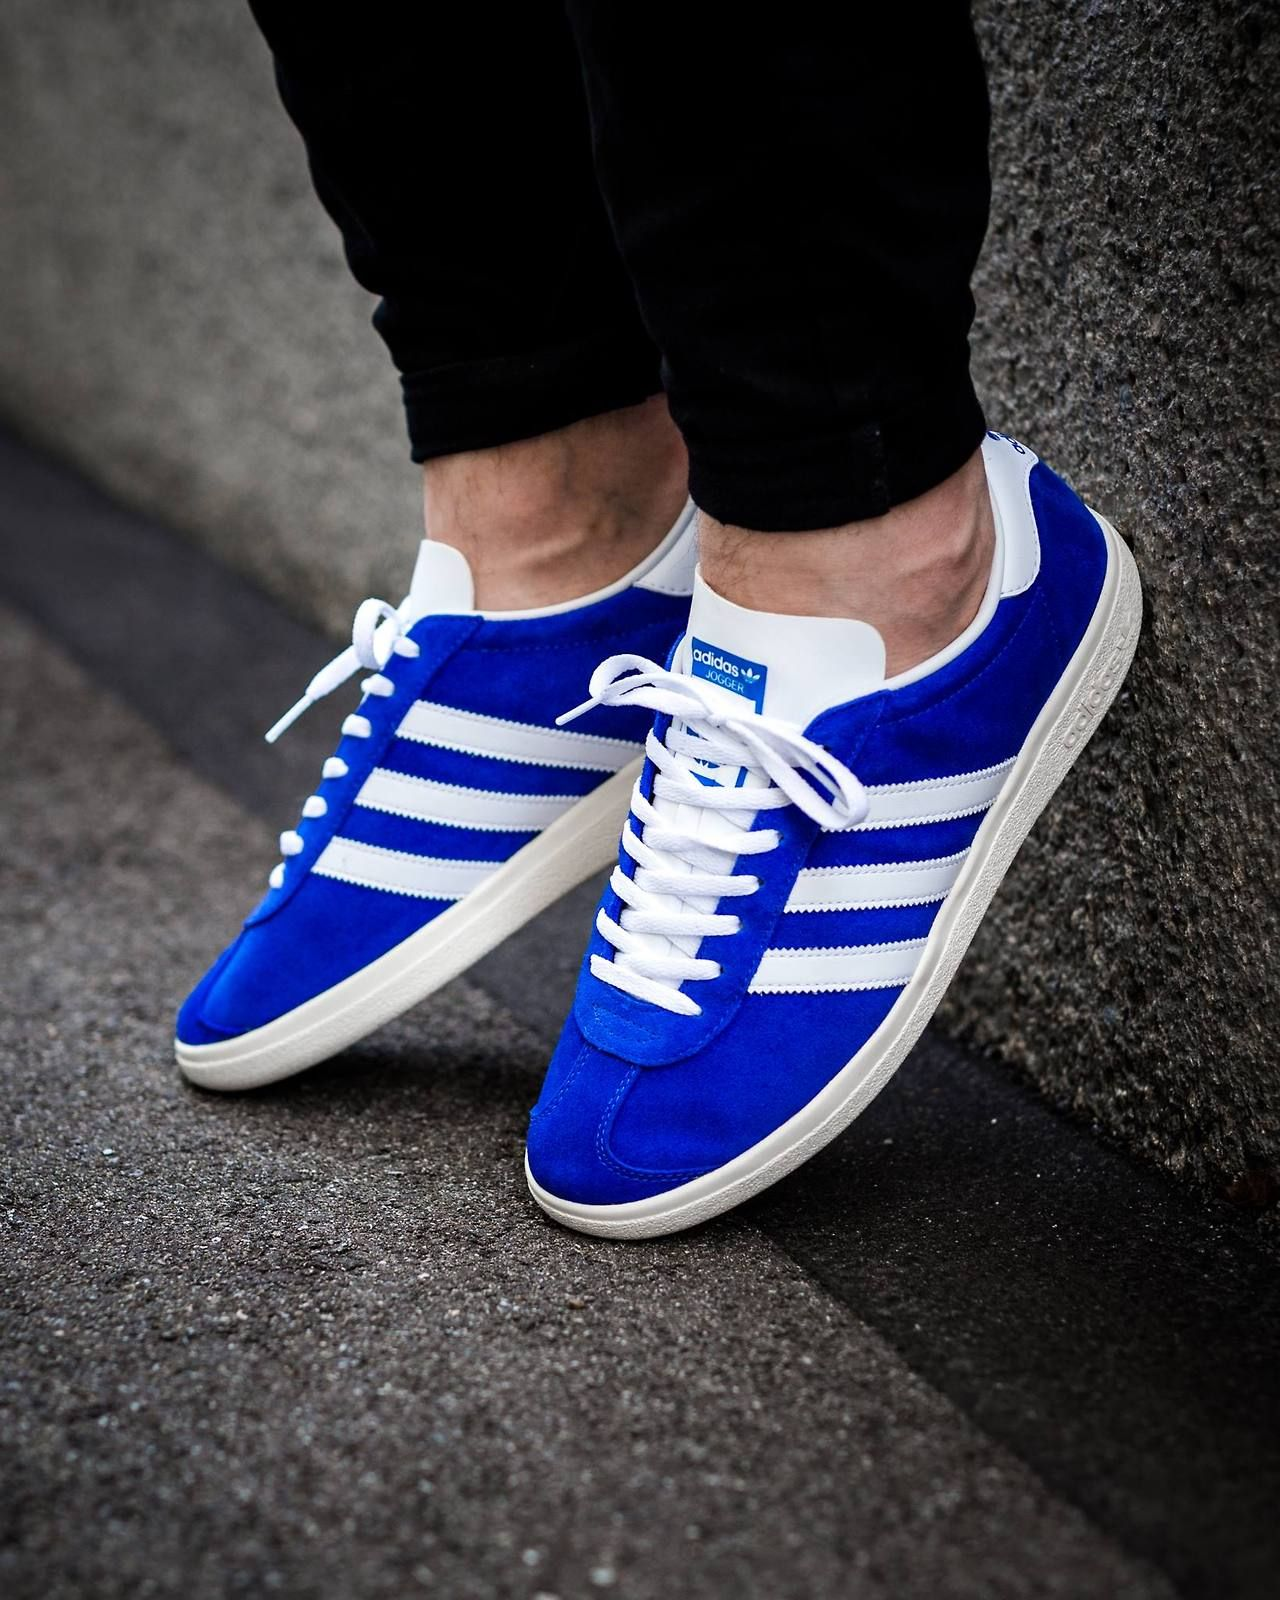 timeless design ef830 3614e adidas x Spezial Jogger  BA7726 Available  Thegoodwillout  SNS   Caliroots  Overkill